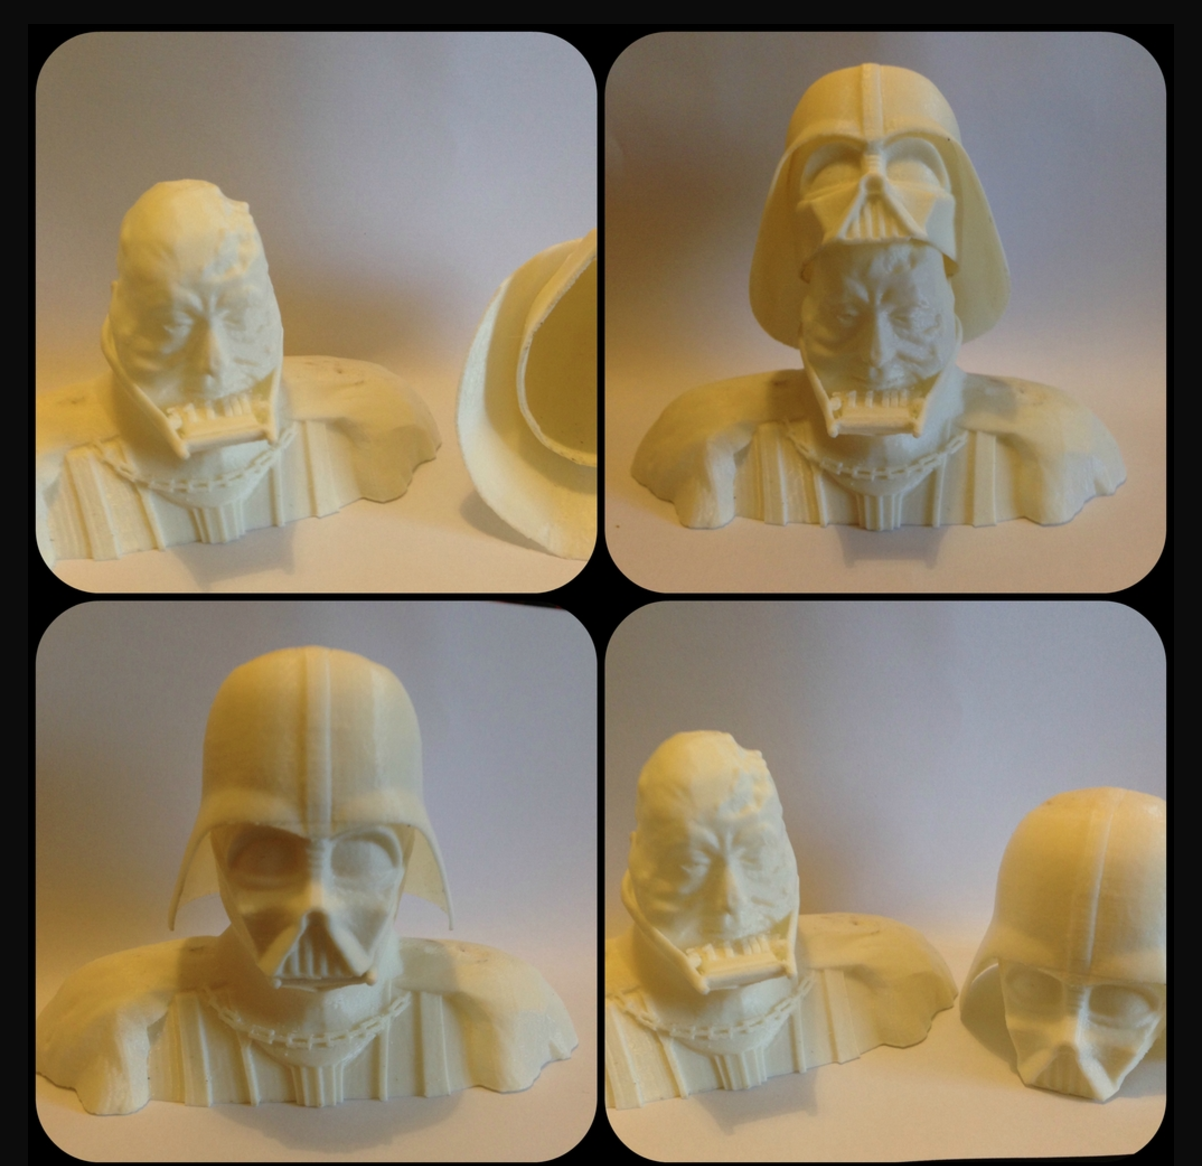 Capture d'écran 2016-12-12 à 17.06.06.png Download free STL file Darth Vader Reveal Bust • Template to 3D print, Geoffro